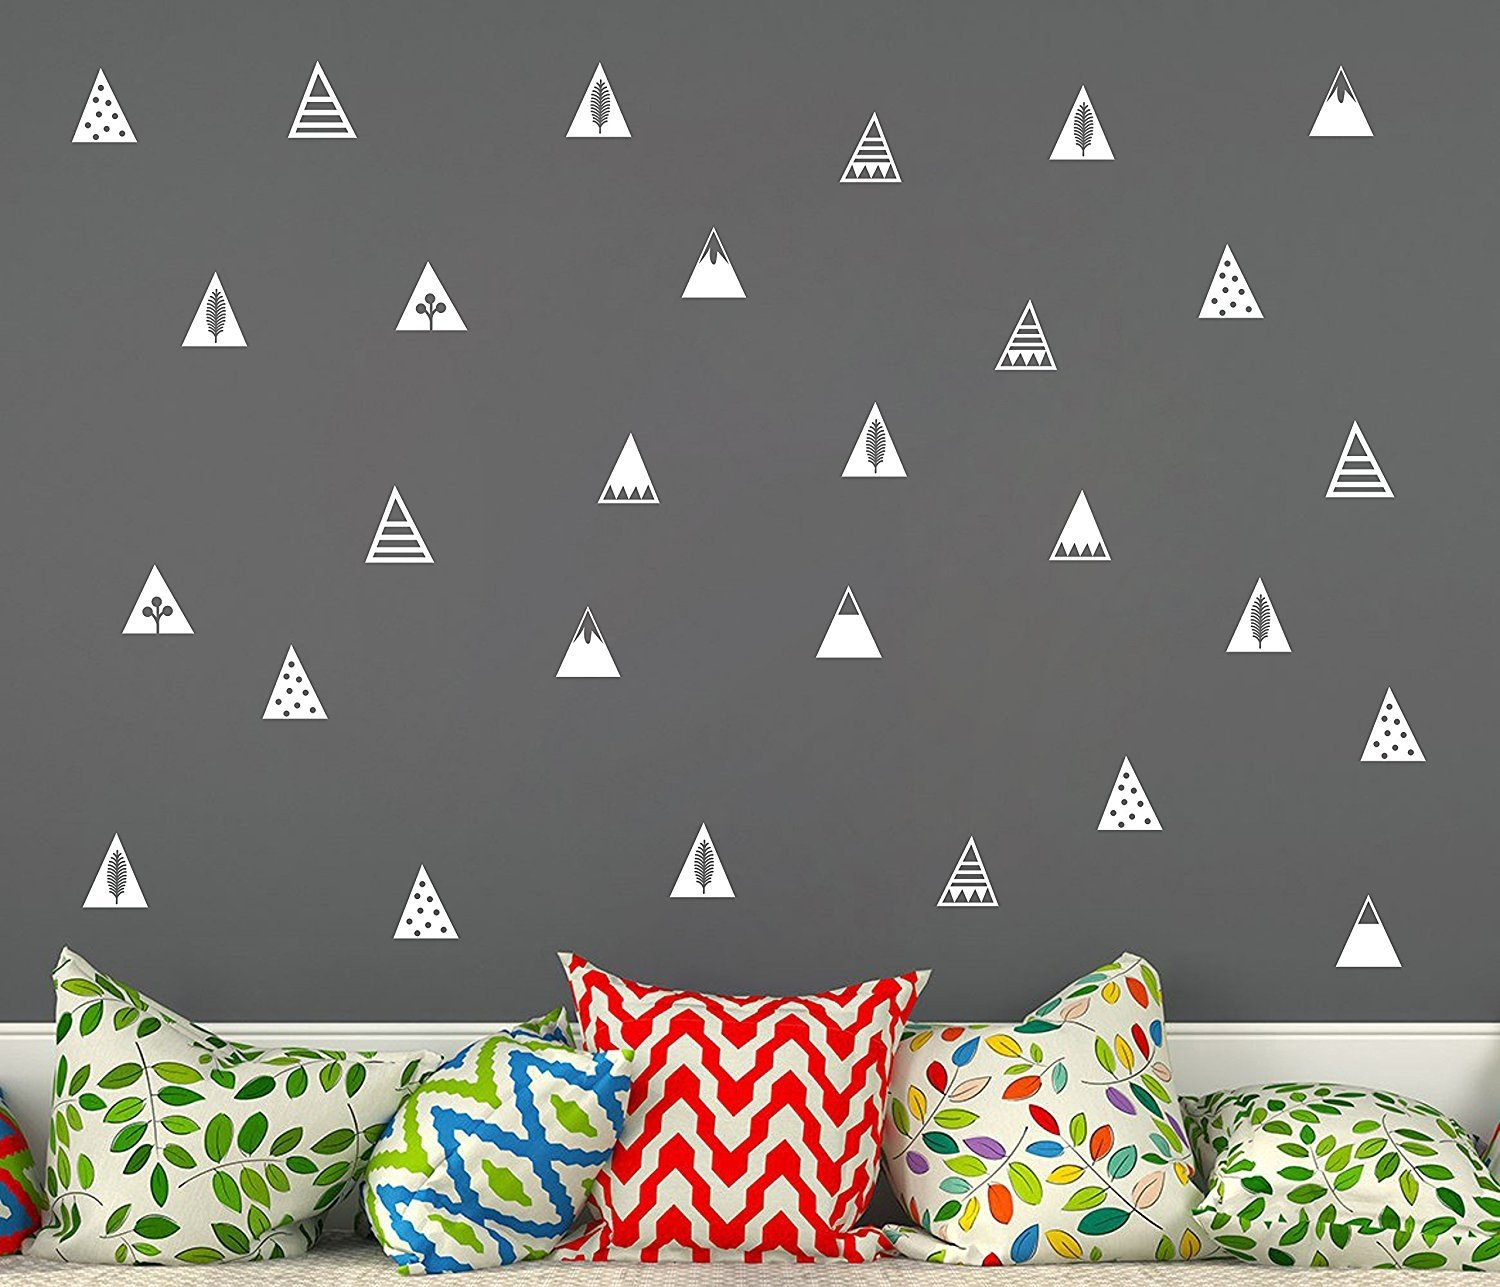 Mountain Wall Decals, 8 Different Pattern, Removable Vinyl Wall Stickers for Baby Kids Boy Girl Bedroom Nursery Decor(A16) (White) Yystore